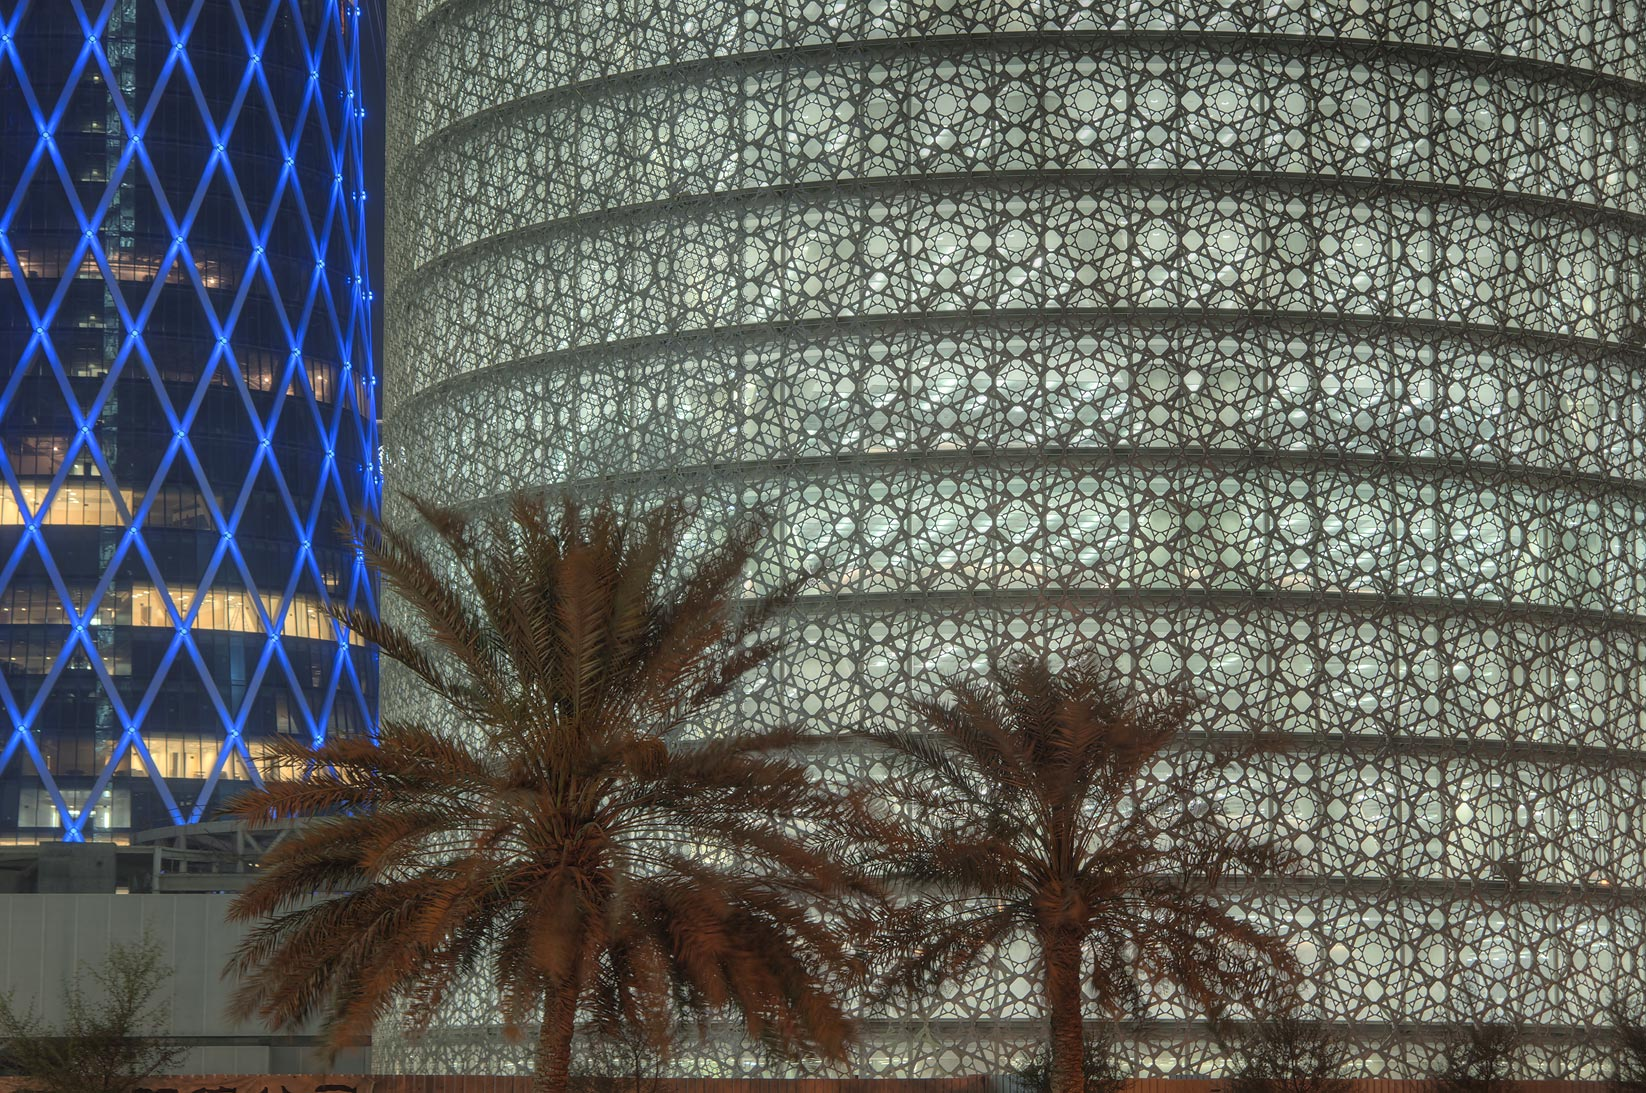 Burj Qatar Tower with lights turned on in West Bay from Corniche. Doha, Qatar